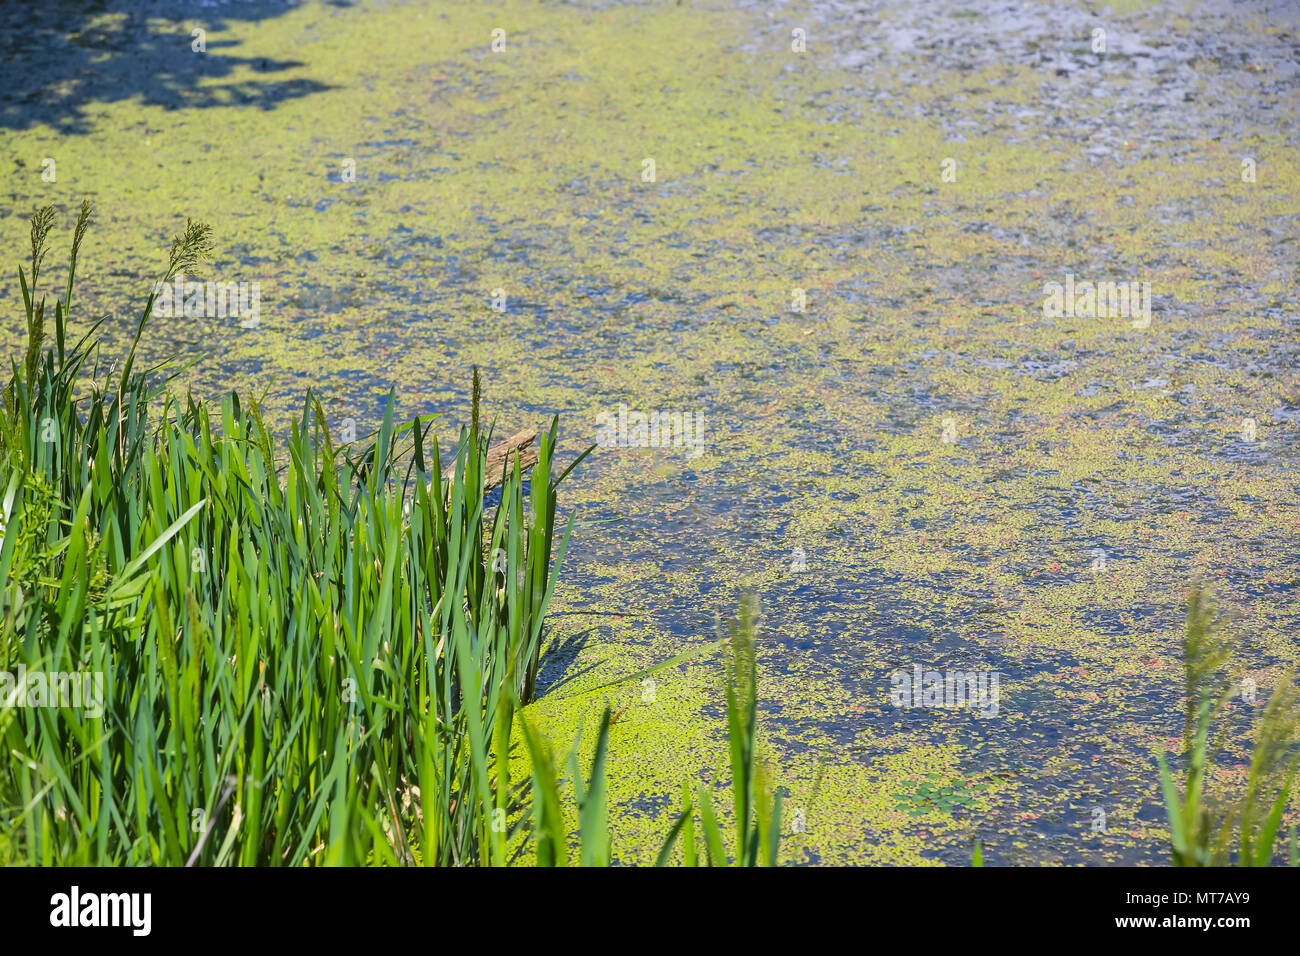 Nature detail of the grass with green river Bosut covered with algal blooms in Vinkovci, Croatia. - Stock Image